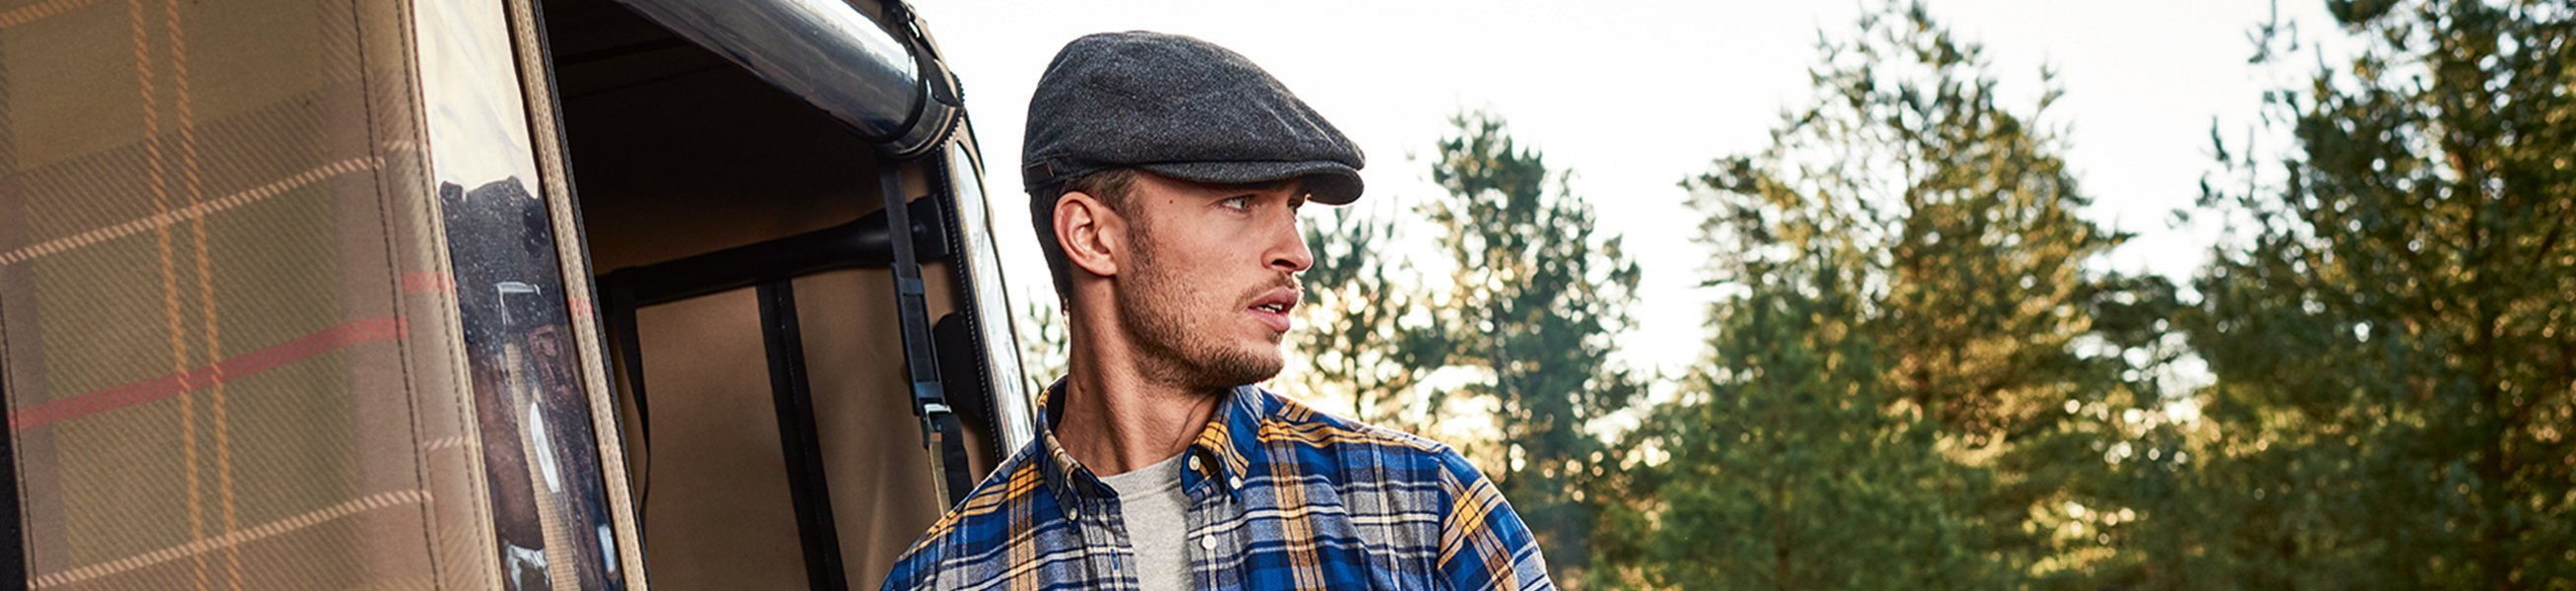 Men\'s caps & hats at Suitable ✔ Different colours and fits ✔ Brands like Levi\'s, Superdry, Tommy Hilfiger, Barbour, Napapijri and more ✔ Shop onlines